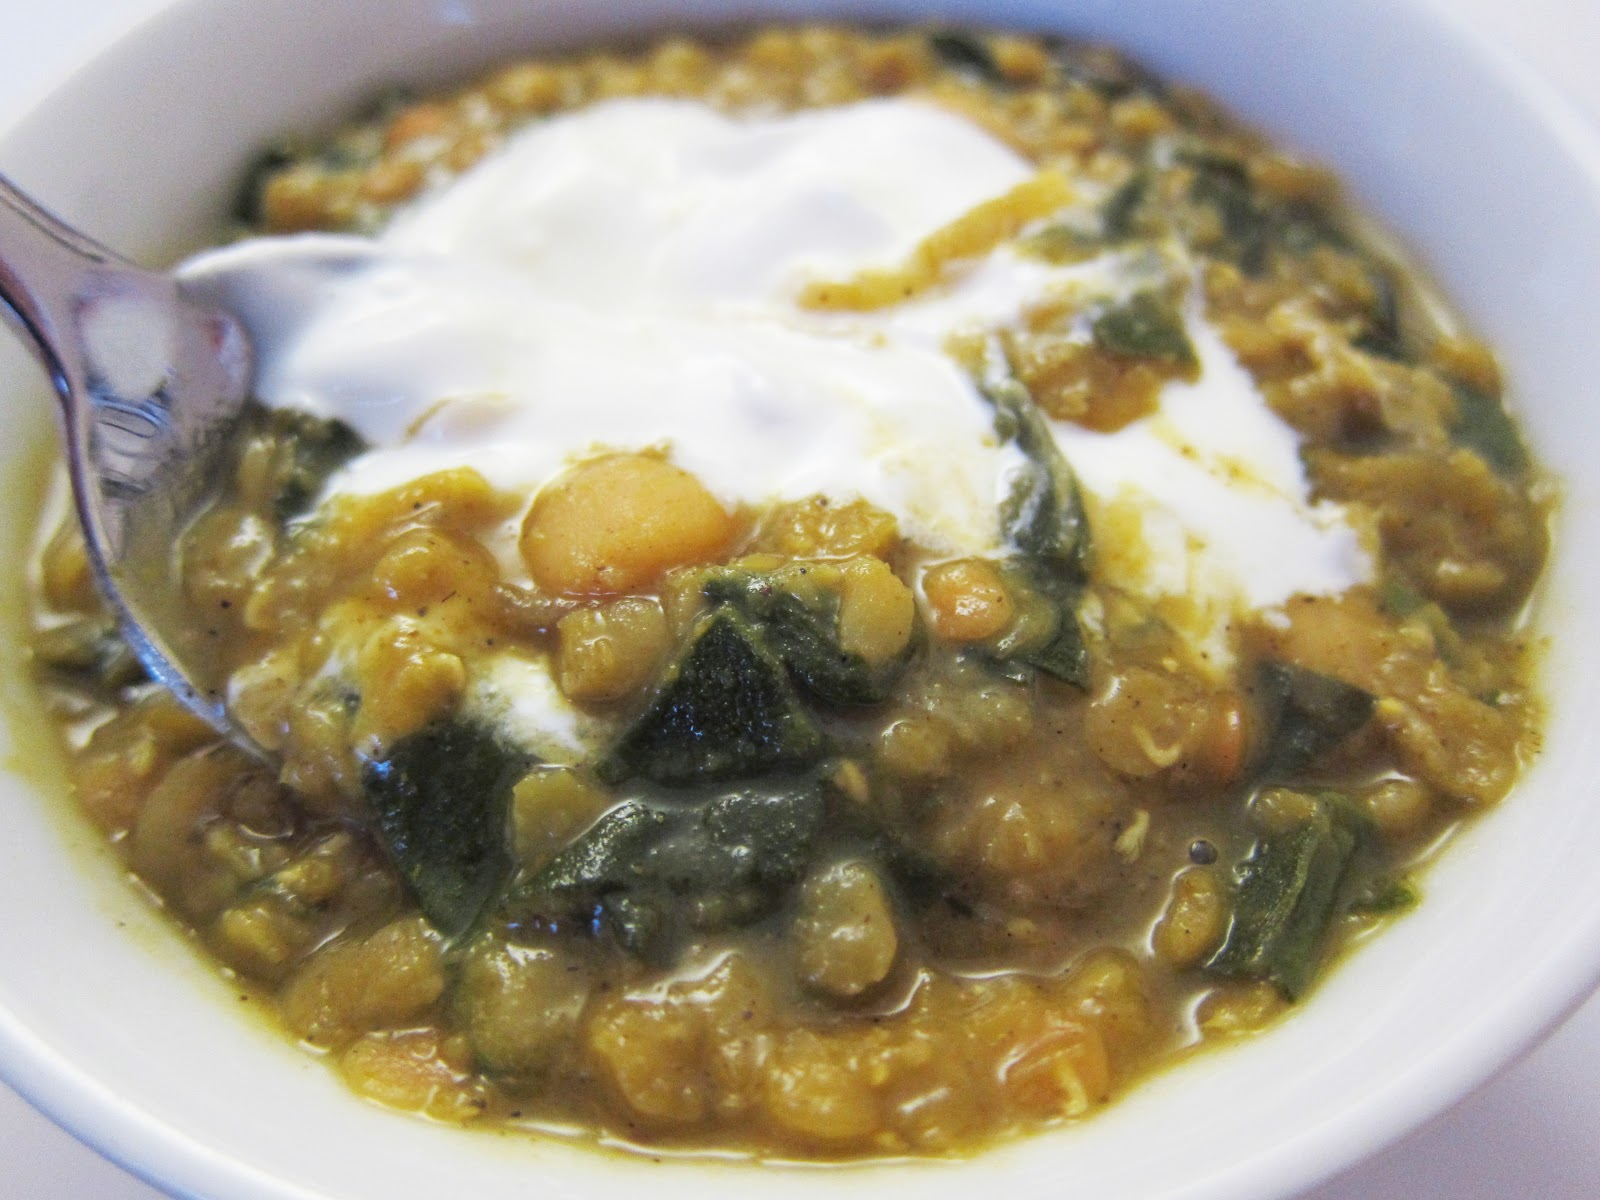 ... Recall: Curried Red Lentil and Swiss Chard Stew with Garbanzo Beans